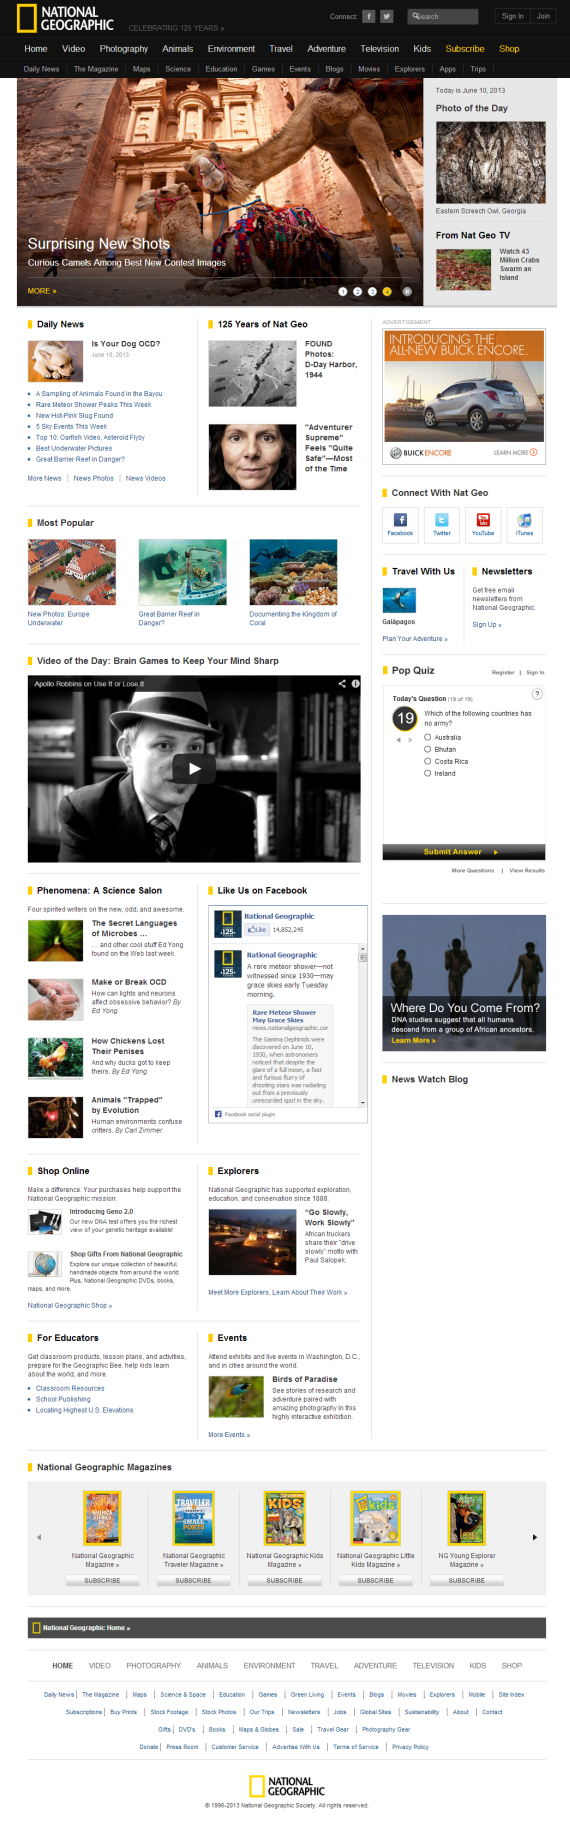 image sizes on national geographic home page